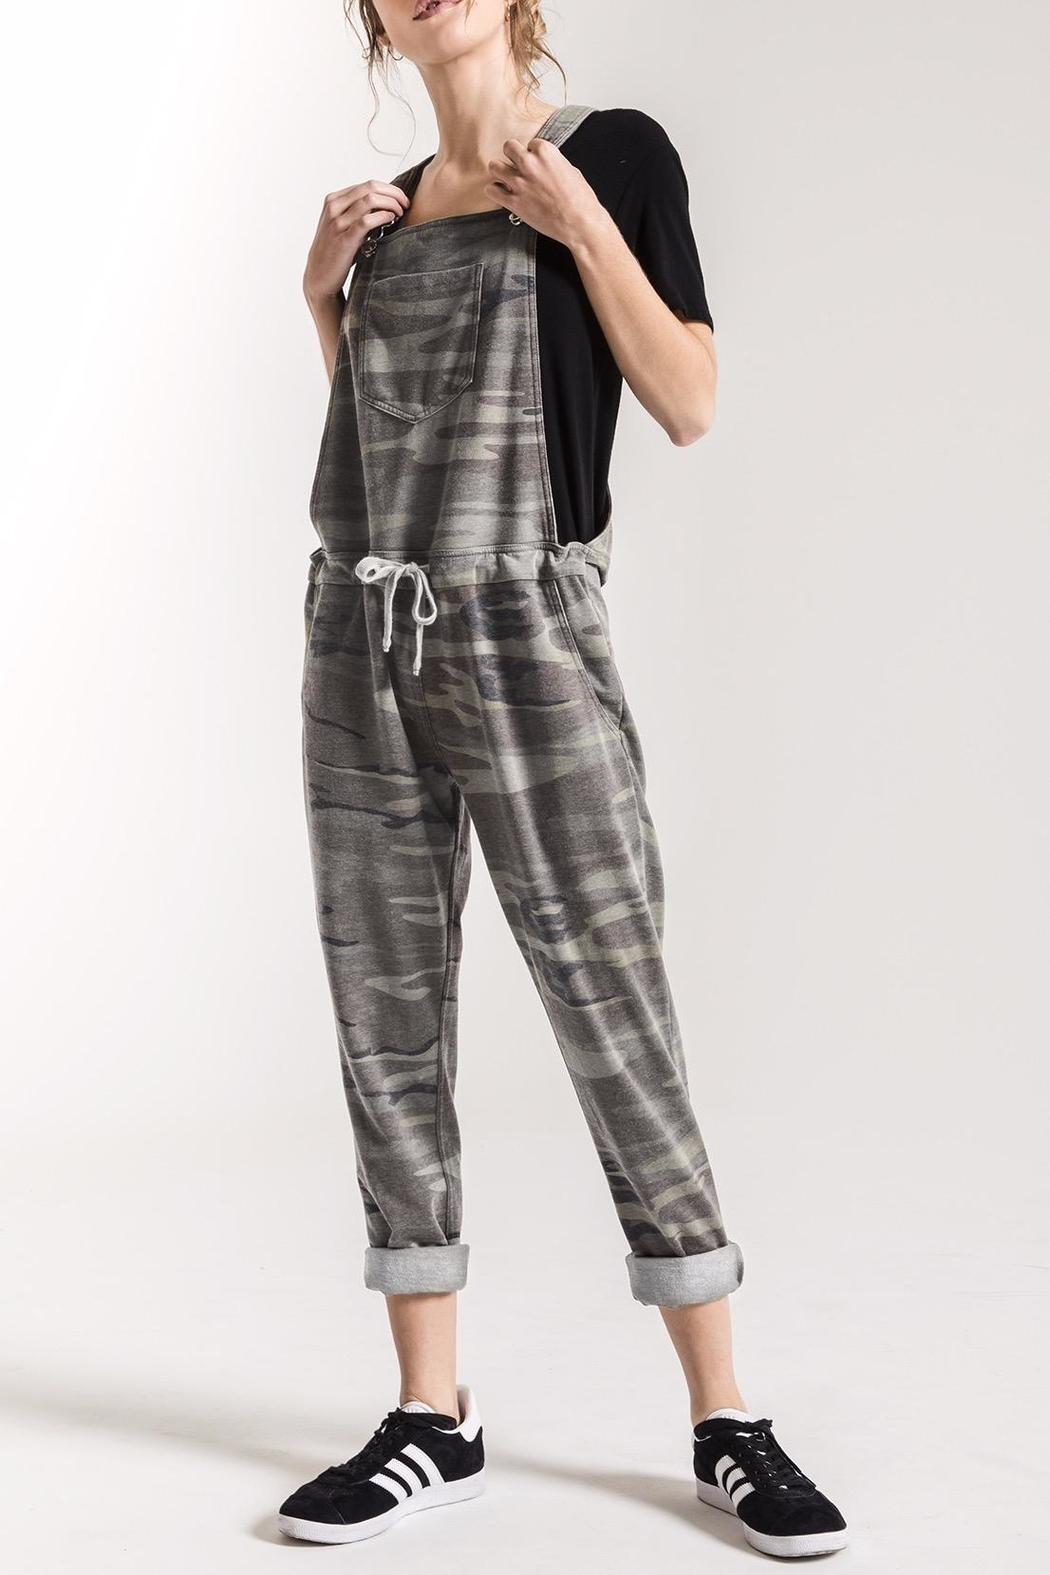 z supply Grey Camo Overalls - Main Image